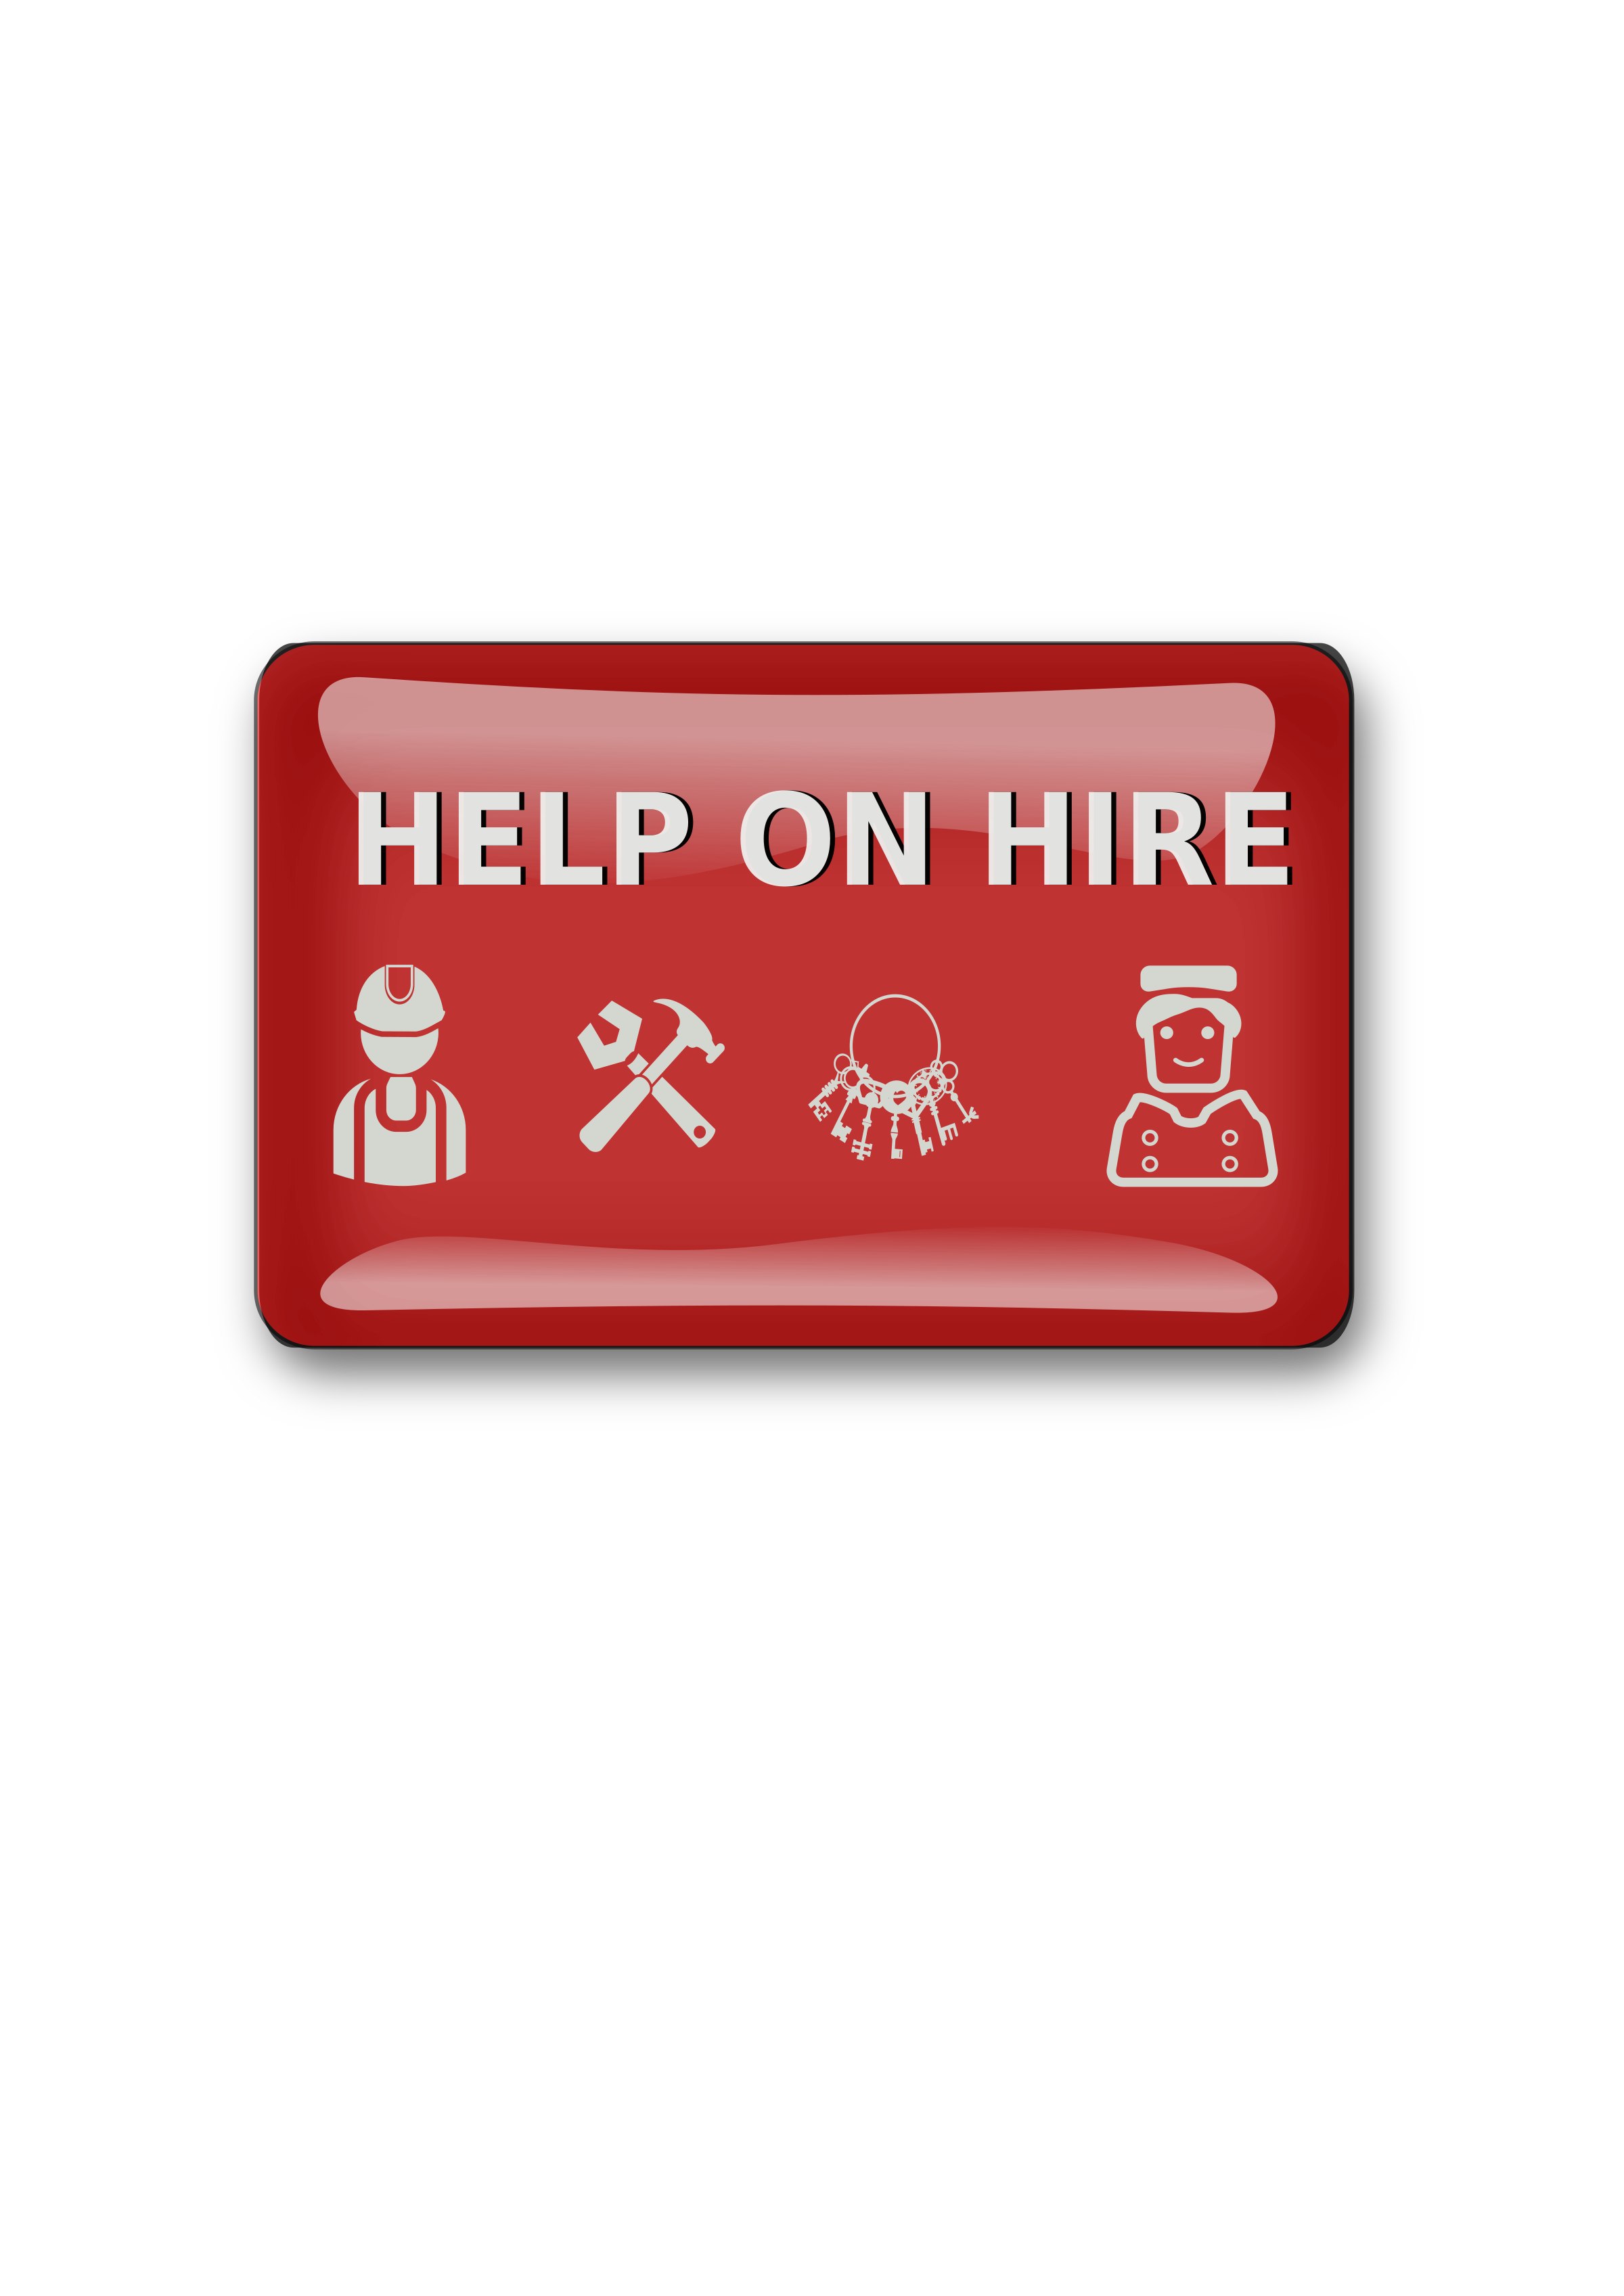 help on hire sign by gatha